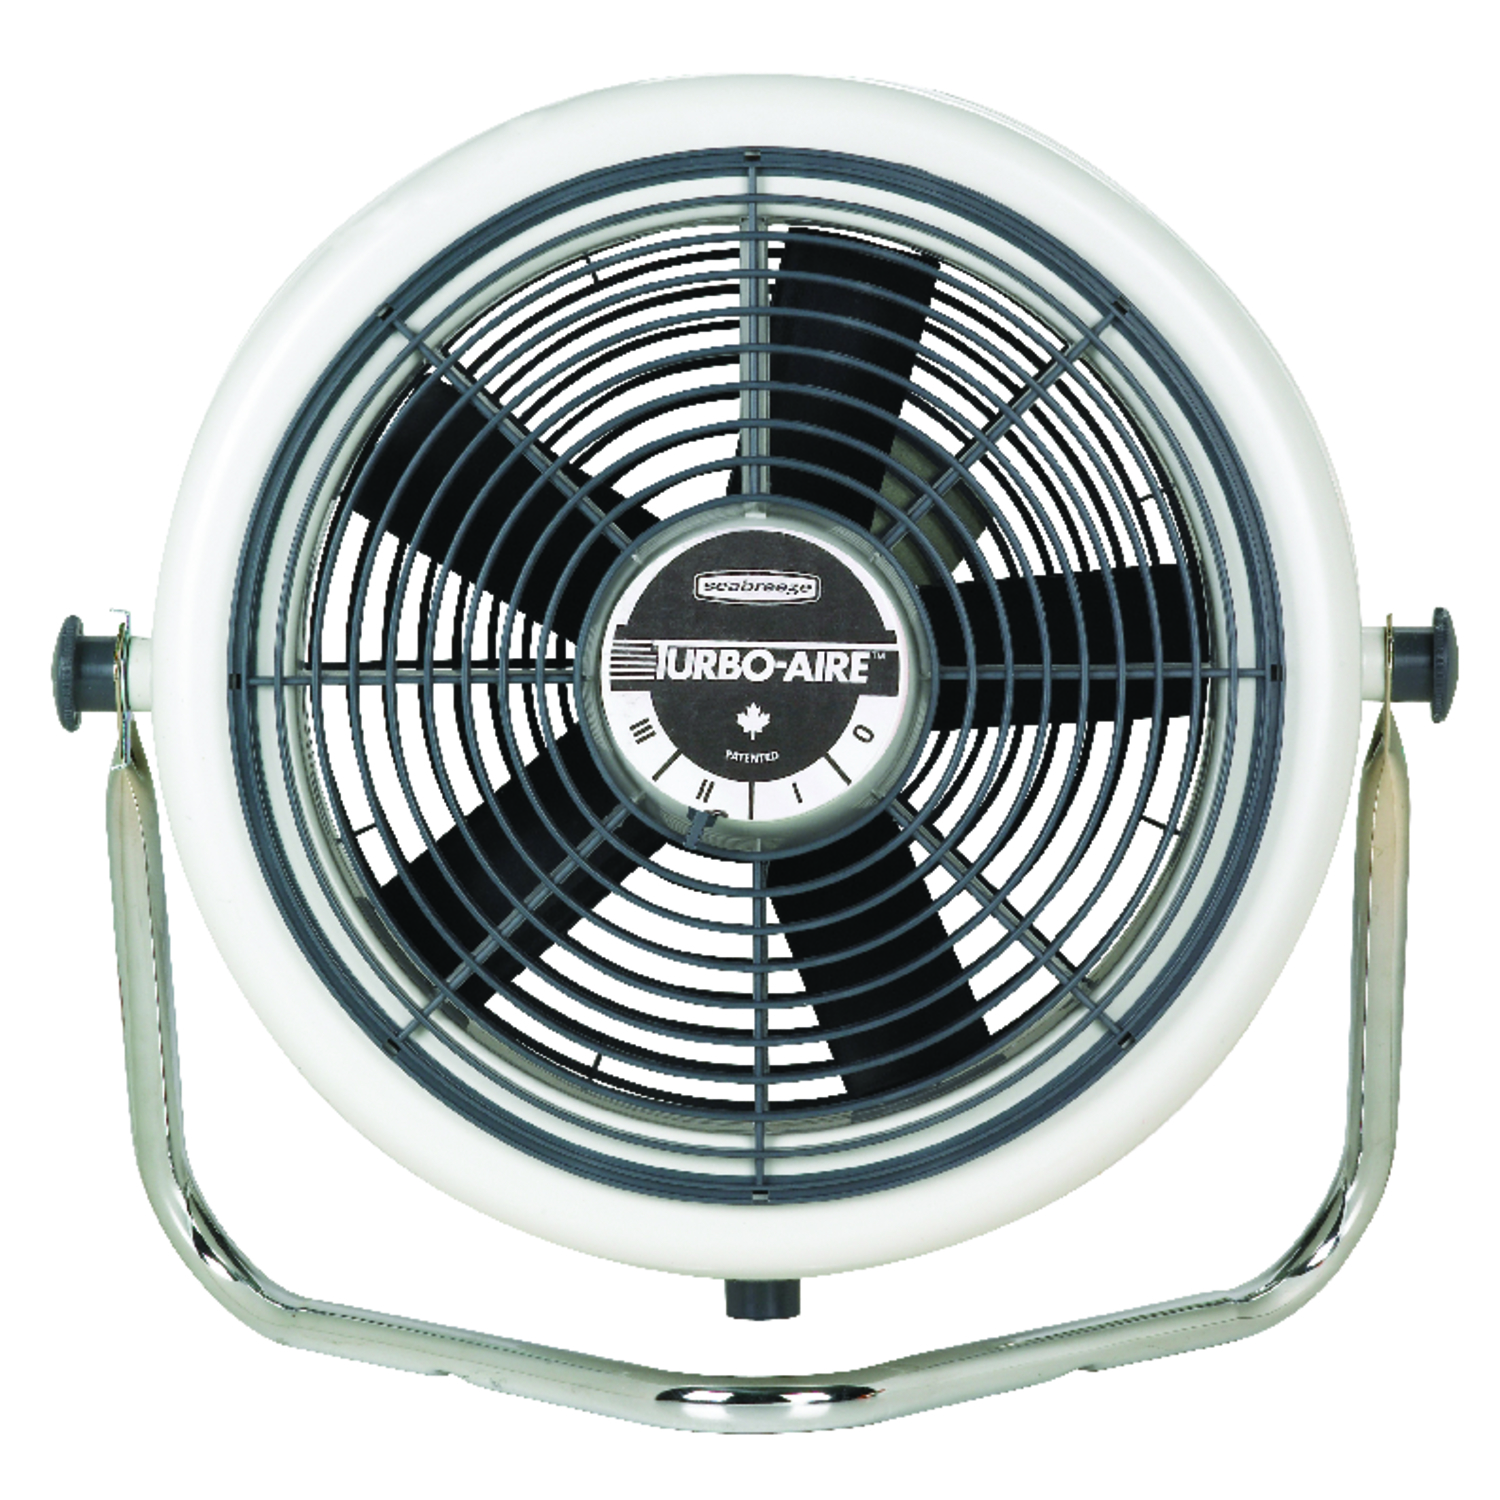 Seabreeze  TURBO-AIRE  12 in. 3 speed Electric  Wall Mount Fan